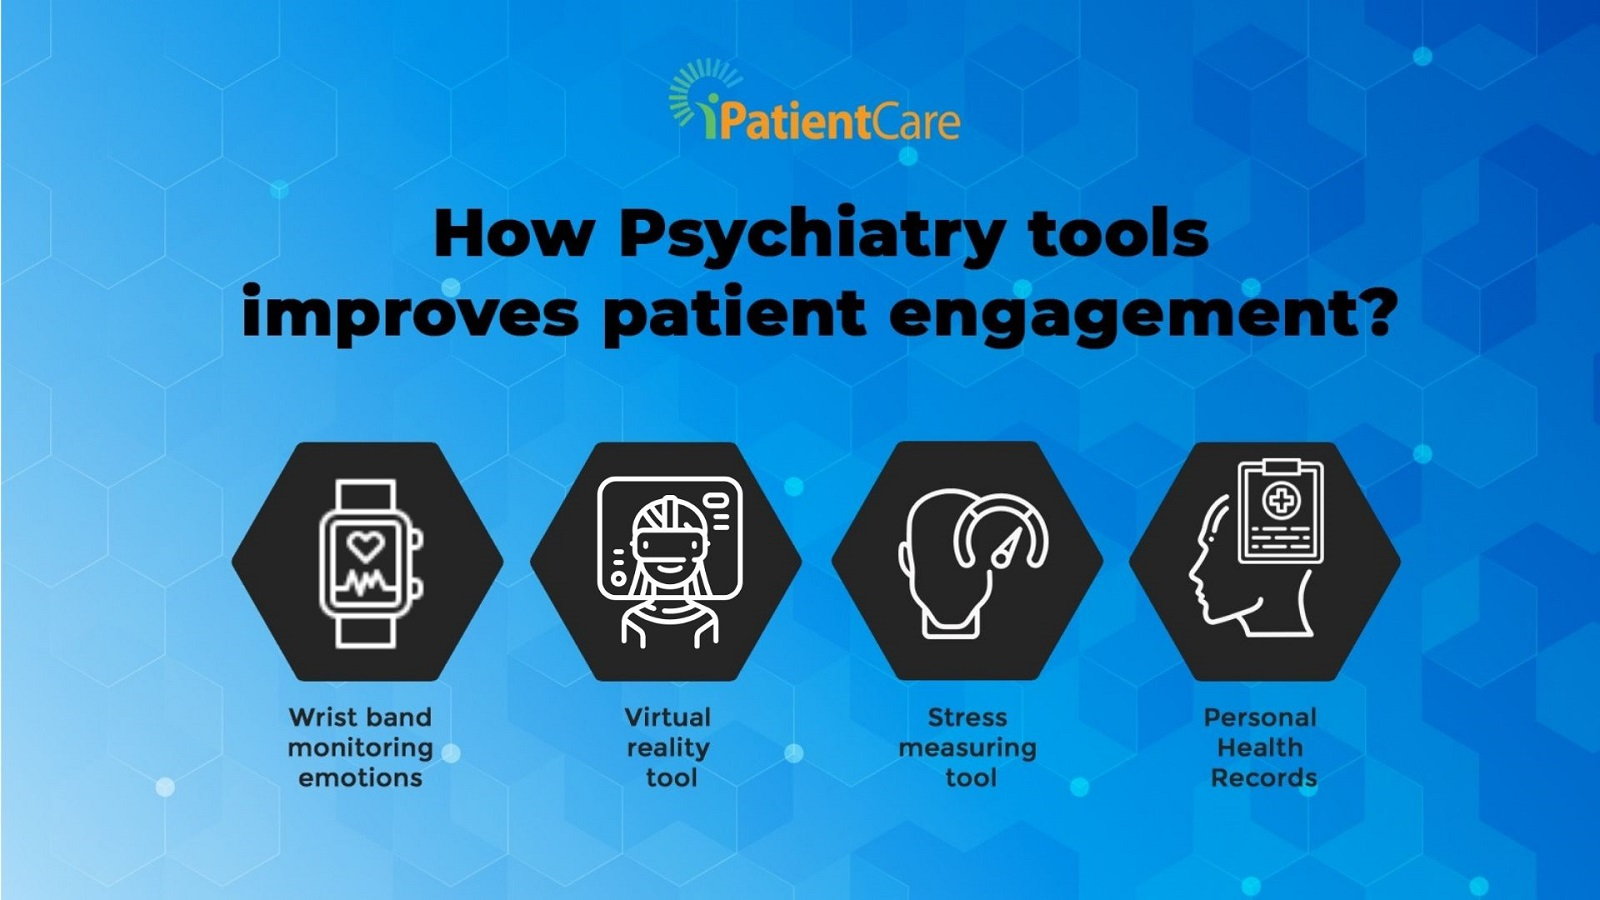 How Psychiatry tools improves patient engagement